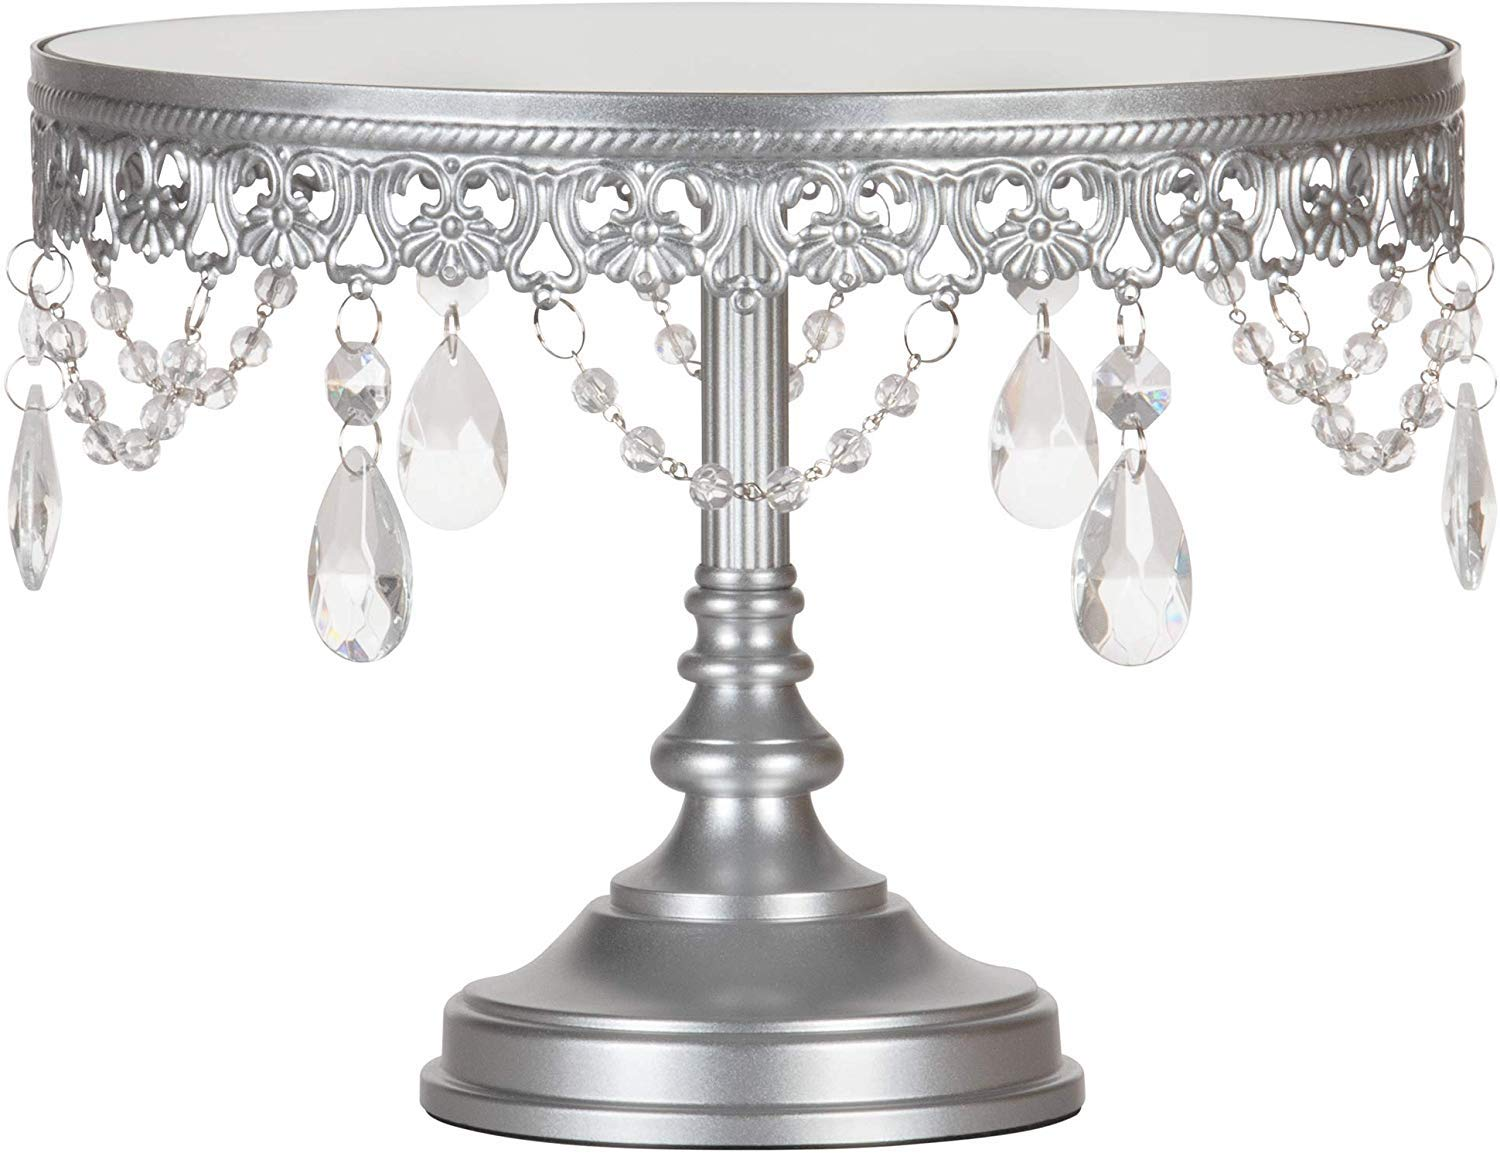 Amalfi Decor 10 Inch Cake Stand, Dessert Cupcake Pastry Candy Display Plate for Wedding Event Birthday Party, Round Metal Pedestal Holder with Crystals, Silver